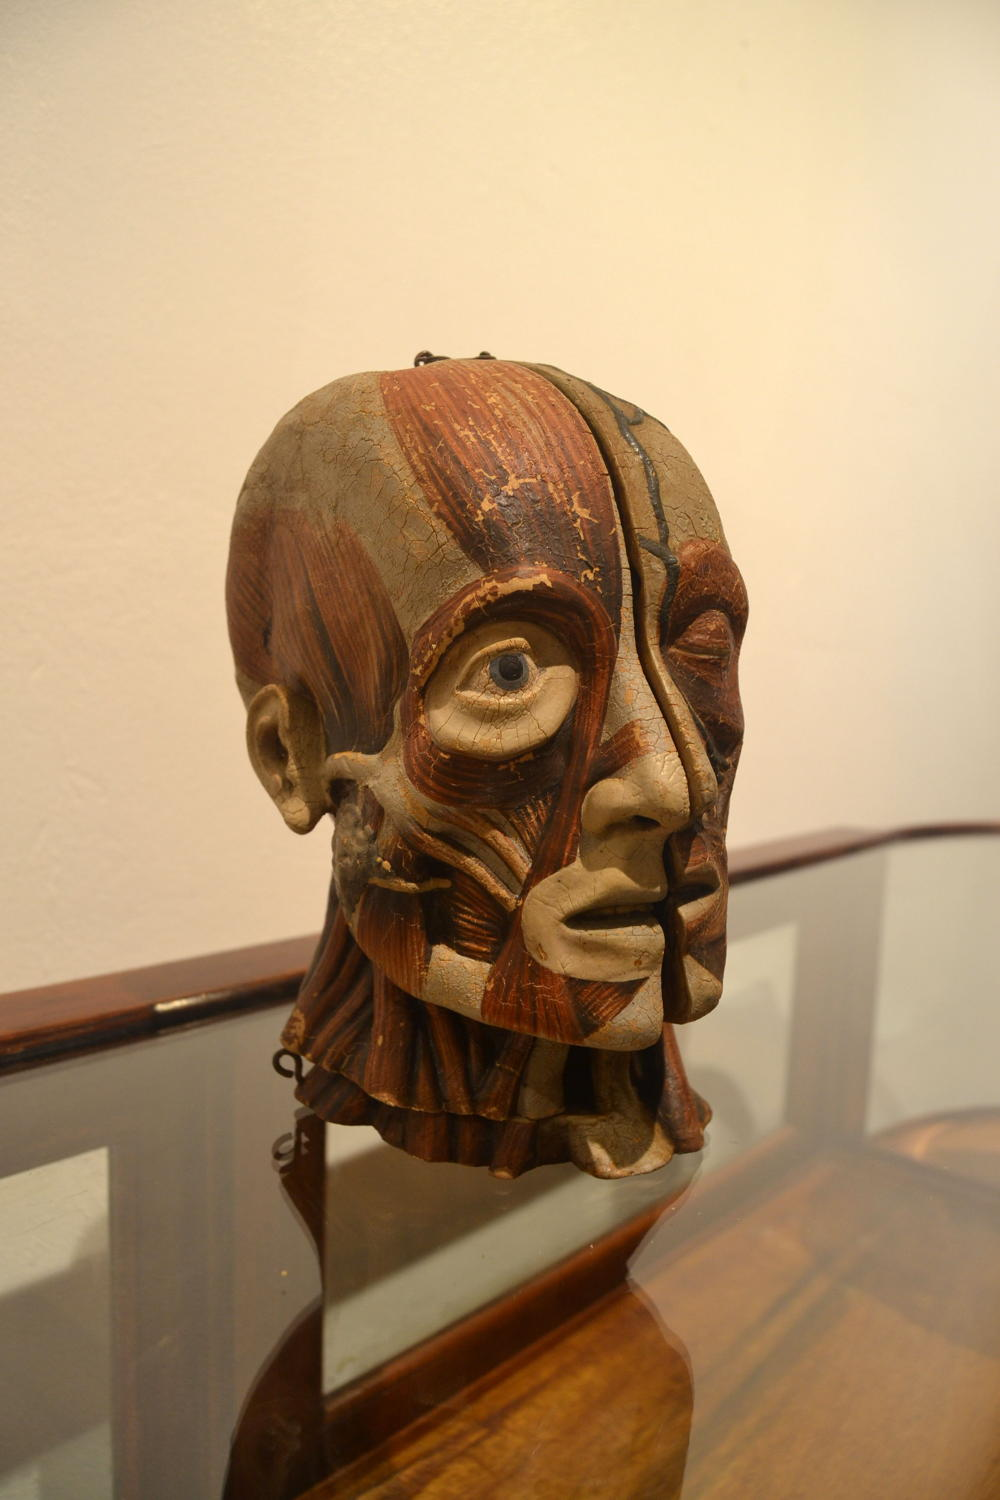 Antique Anatomical Head Model